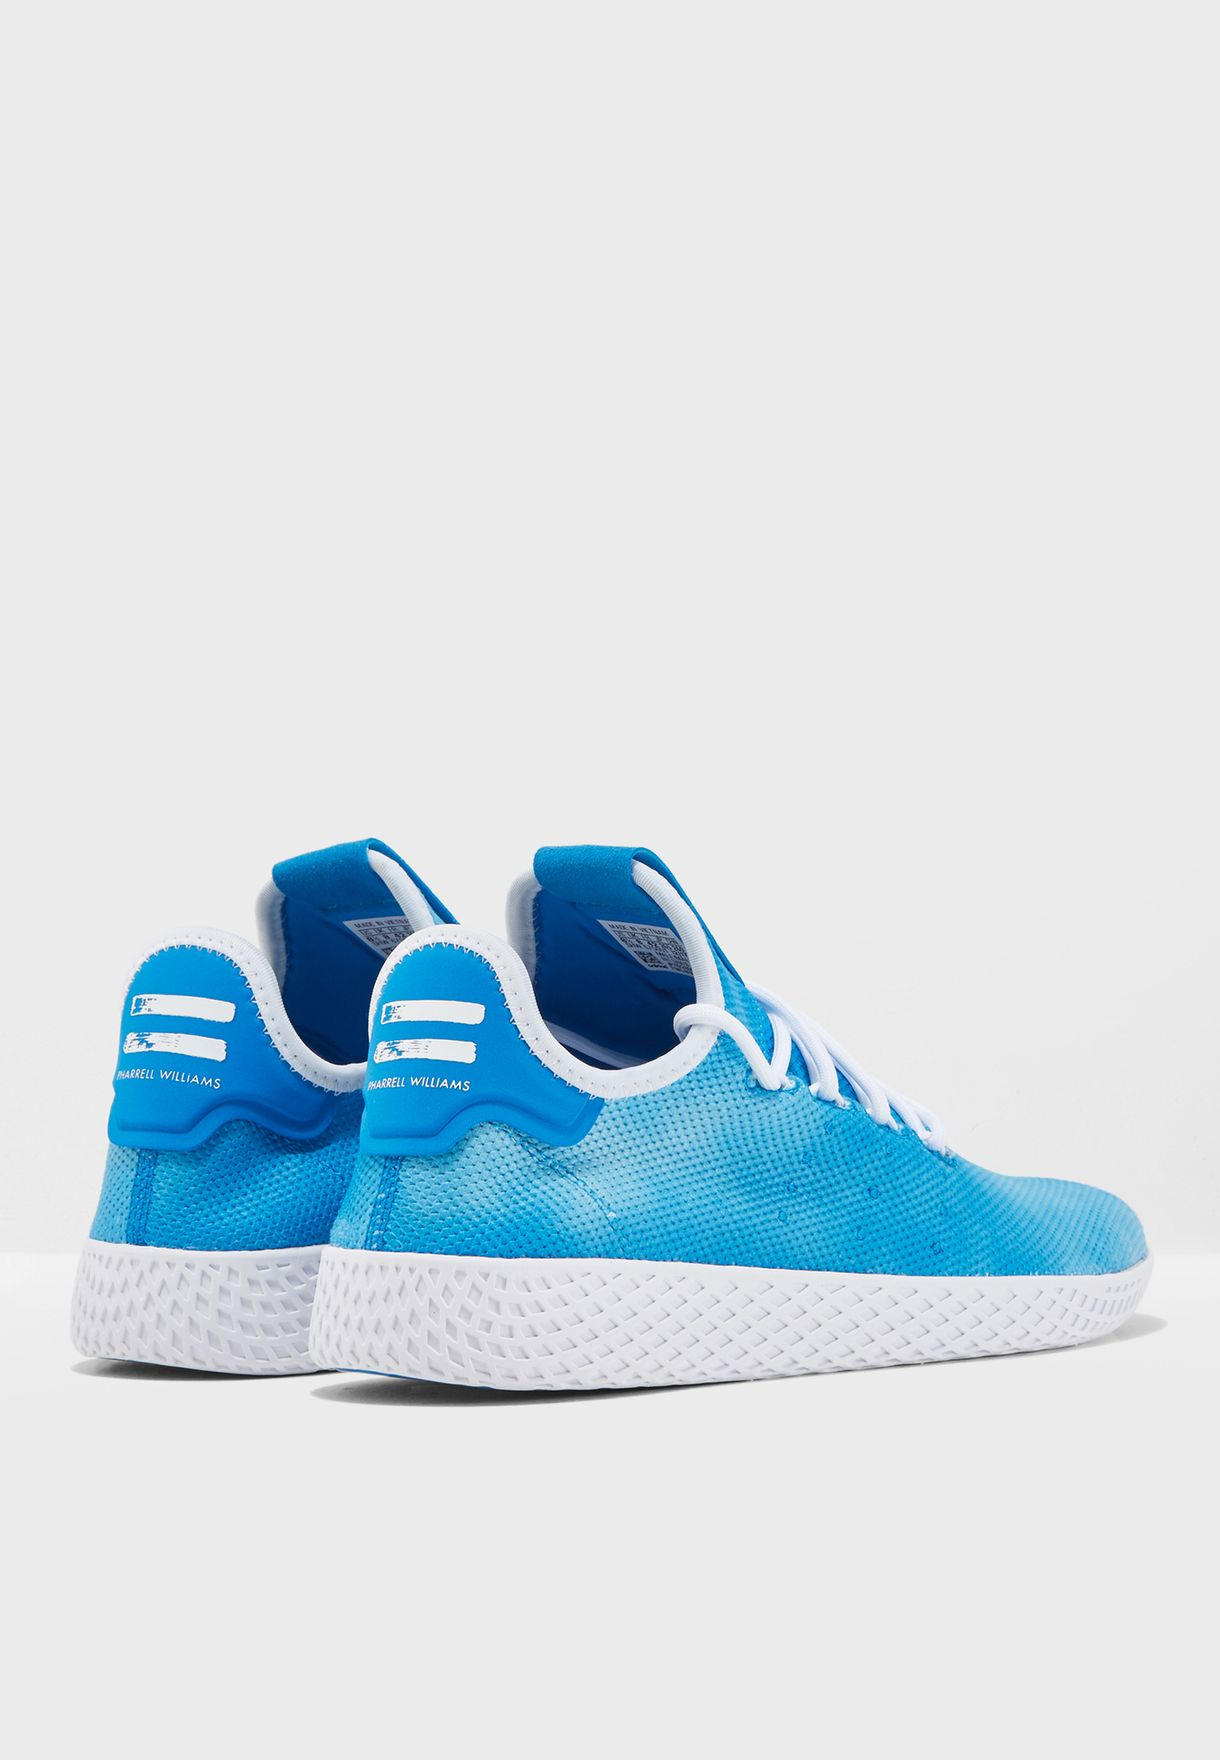 4bf3f2ee345a1 Shop adidas Originals blue Pharrell Williams Hu Holi Tennis DA9618 ...